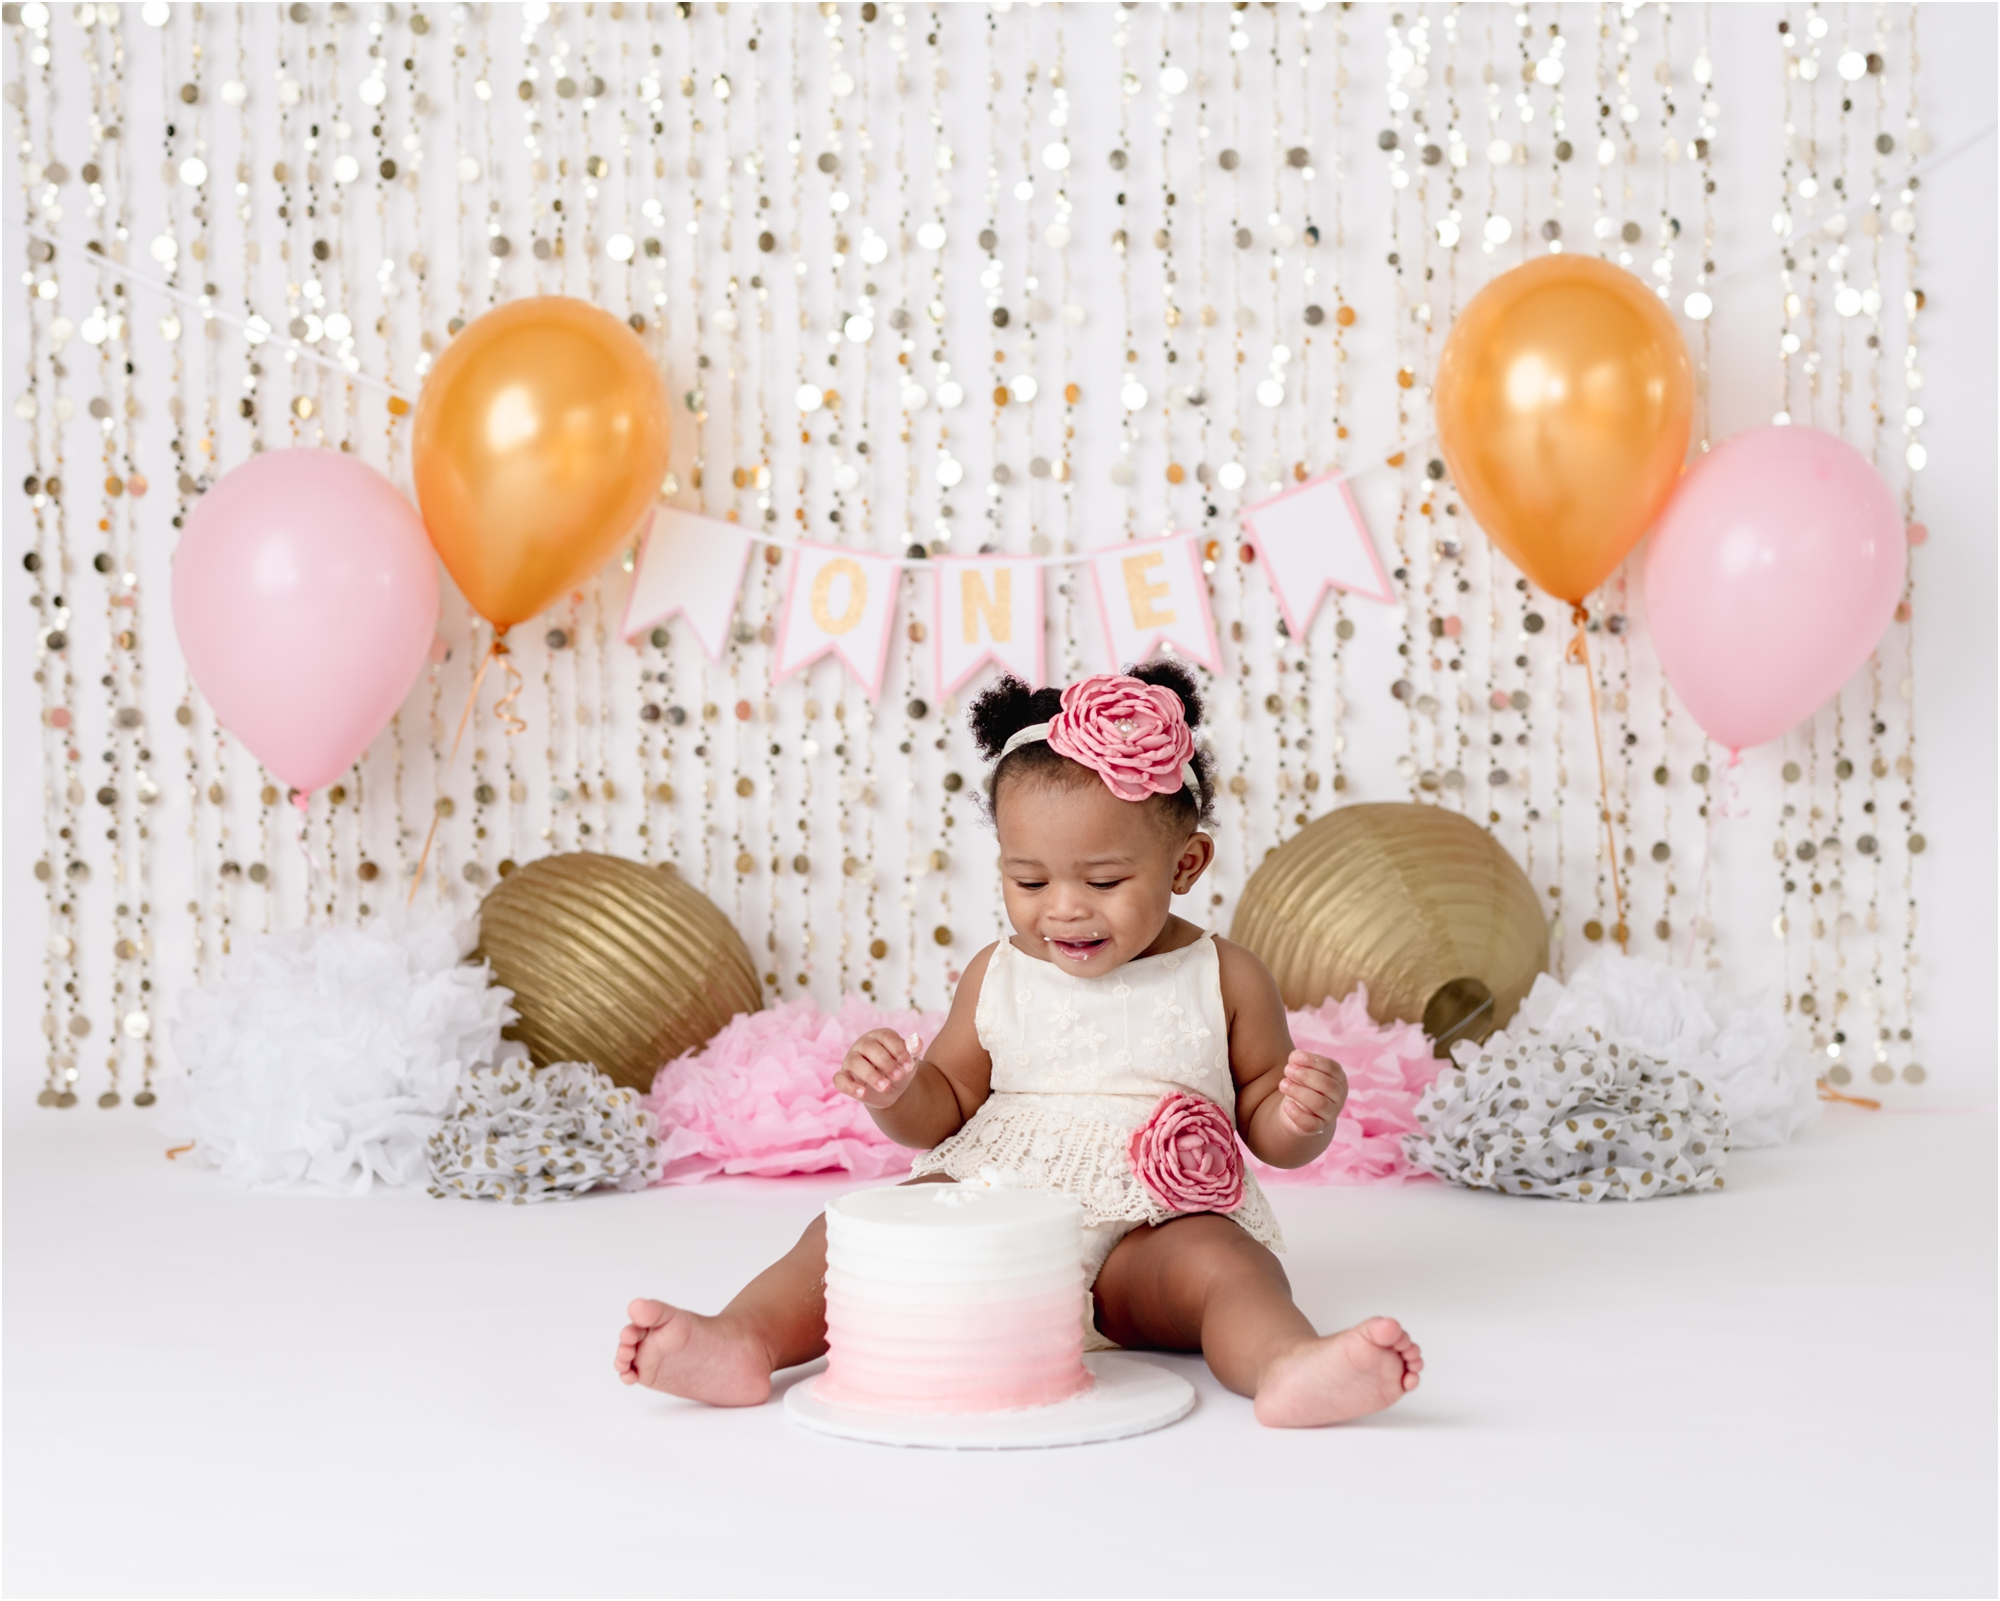 Baby girl smiling during cake smash photoshoot with pink and gold balloons and ombre cake. Photo by Houston cake smash photographer, Lifetime of Clicks Photography.